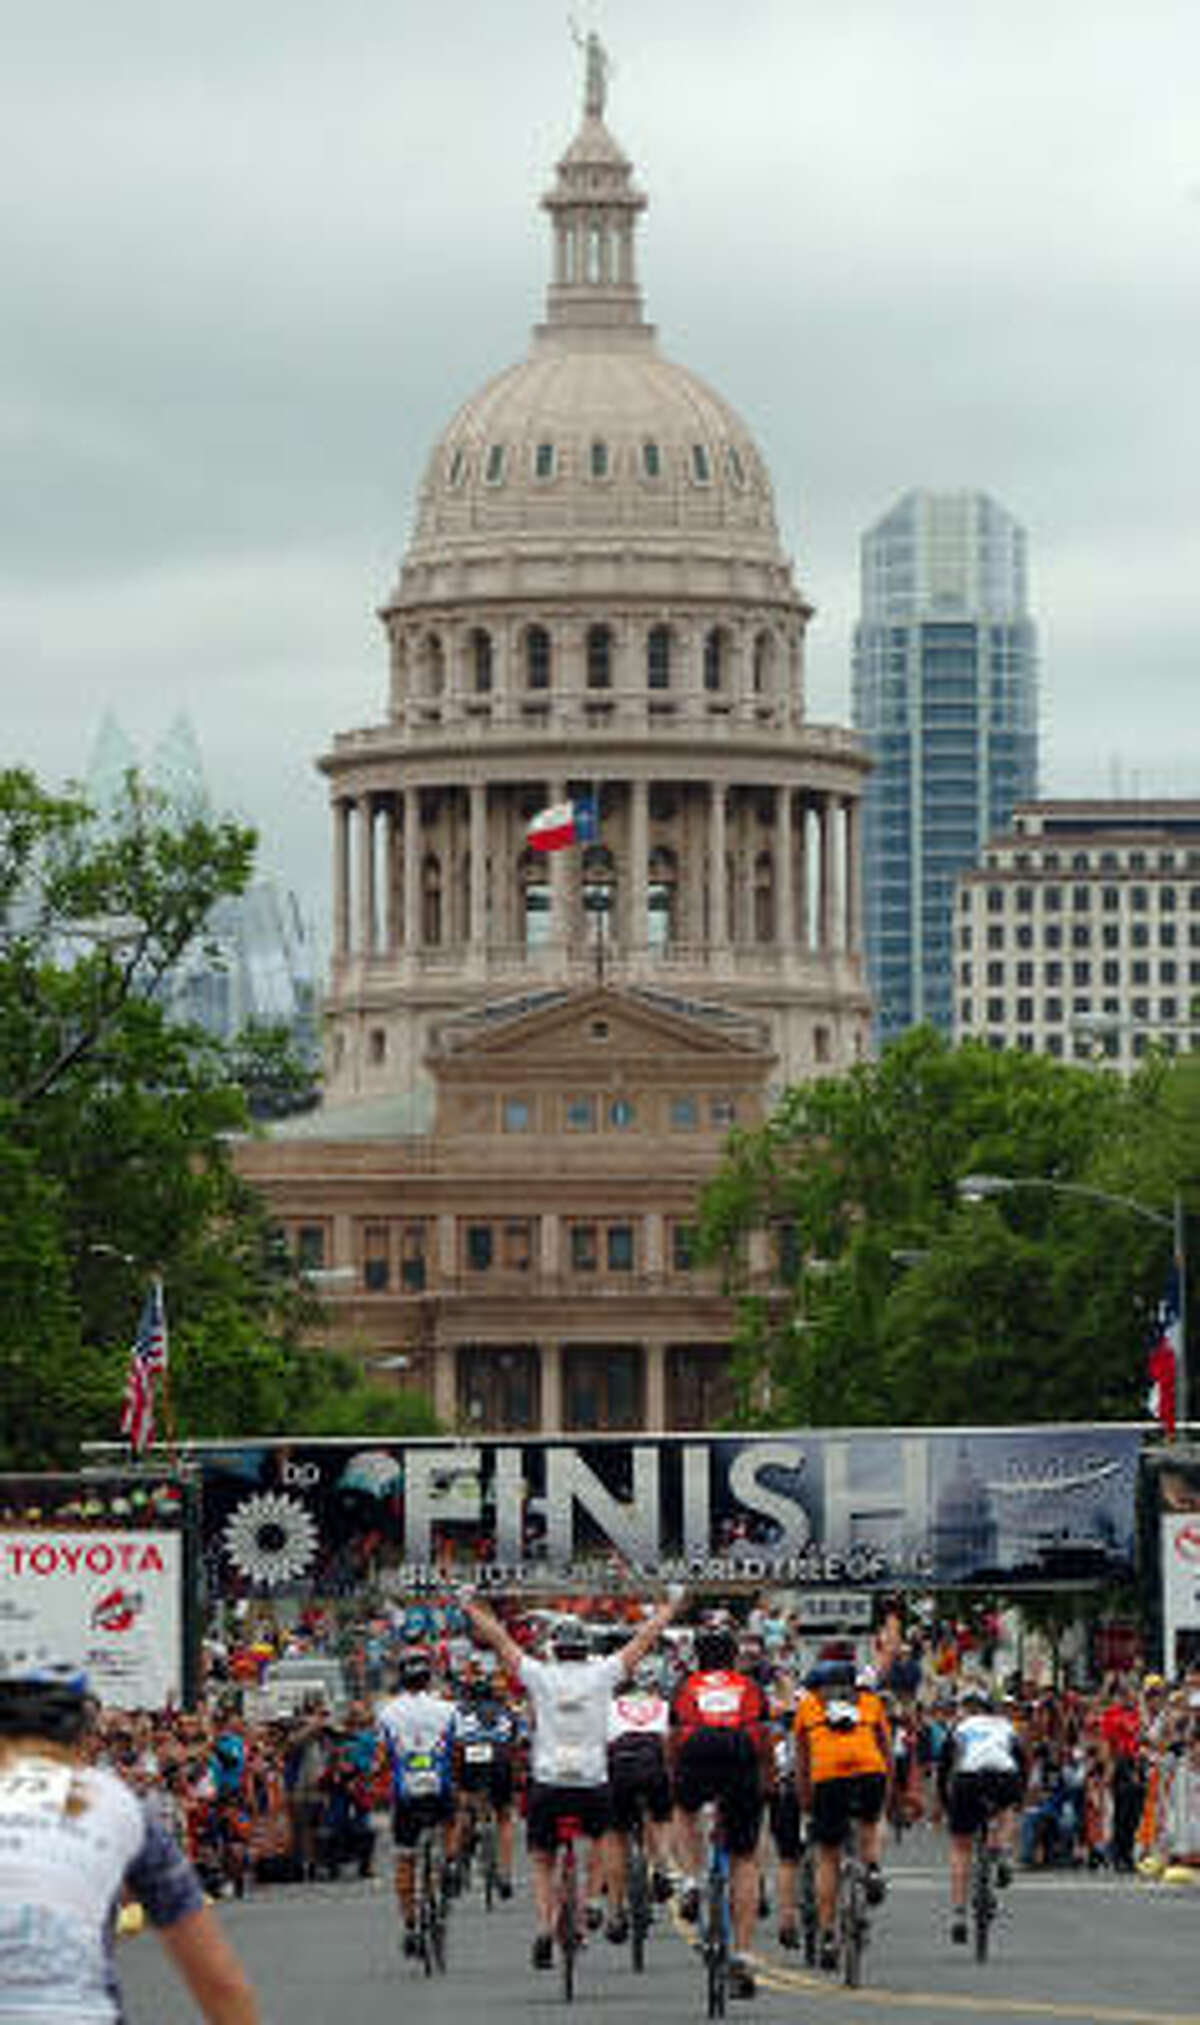 MS 150 riders celebrate as they cross the finish line Sunday morning near the Texas State Capitol.